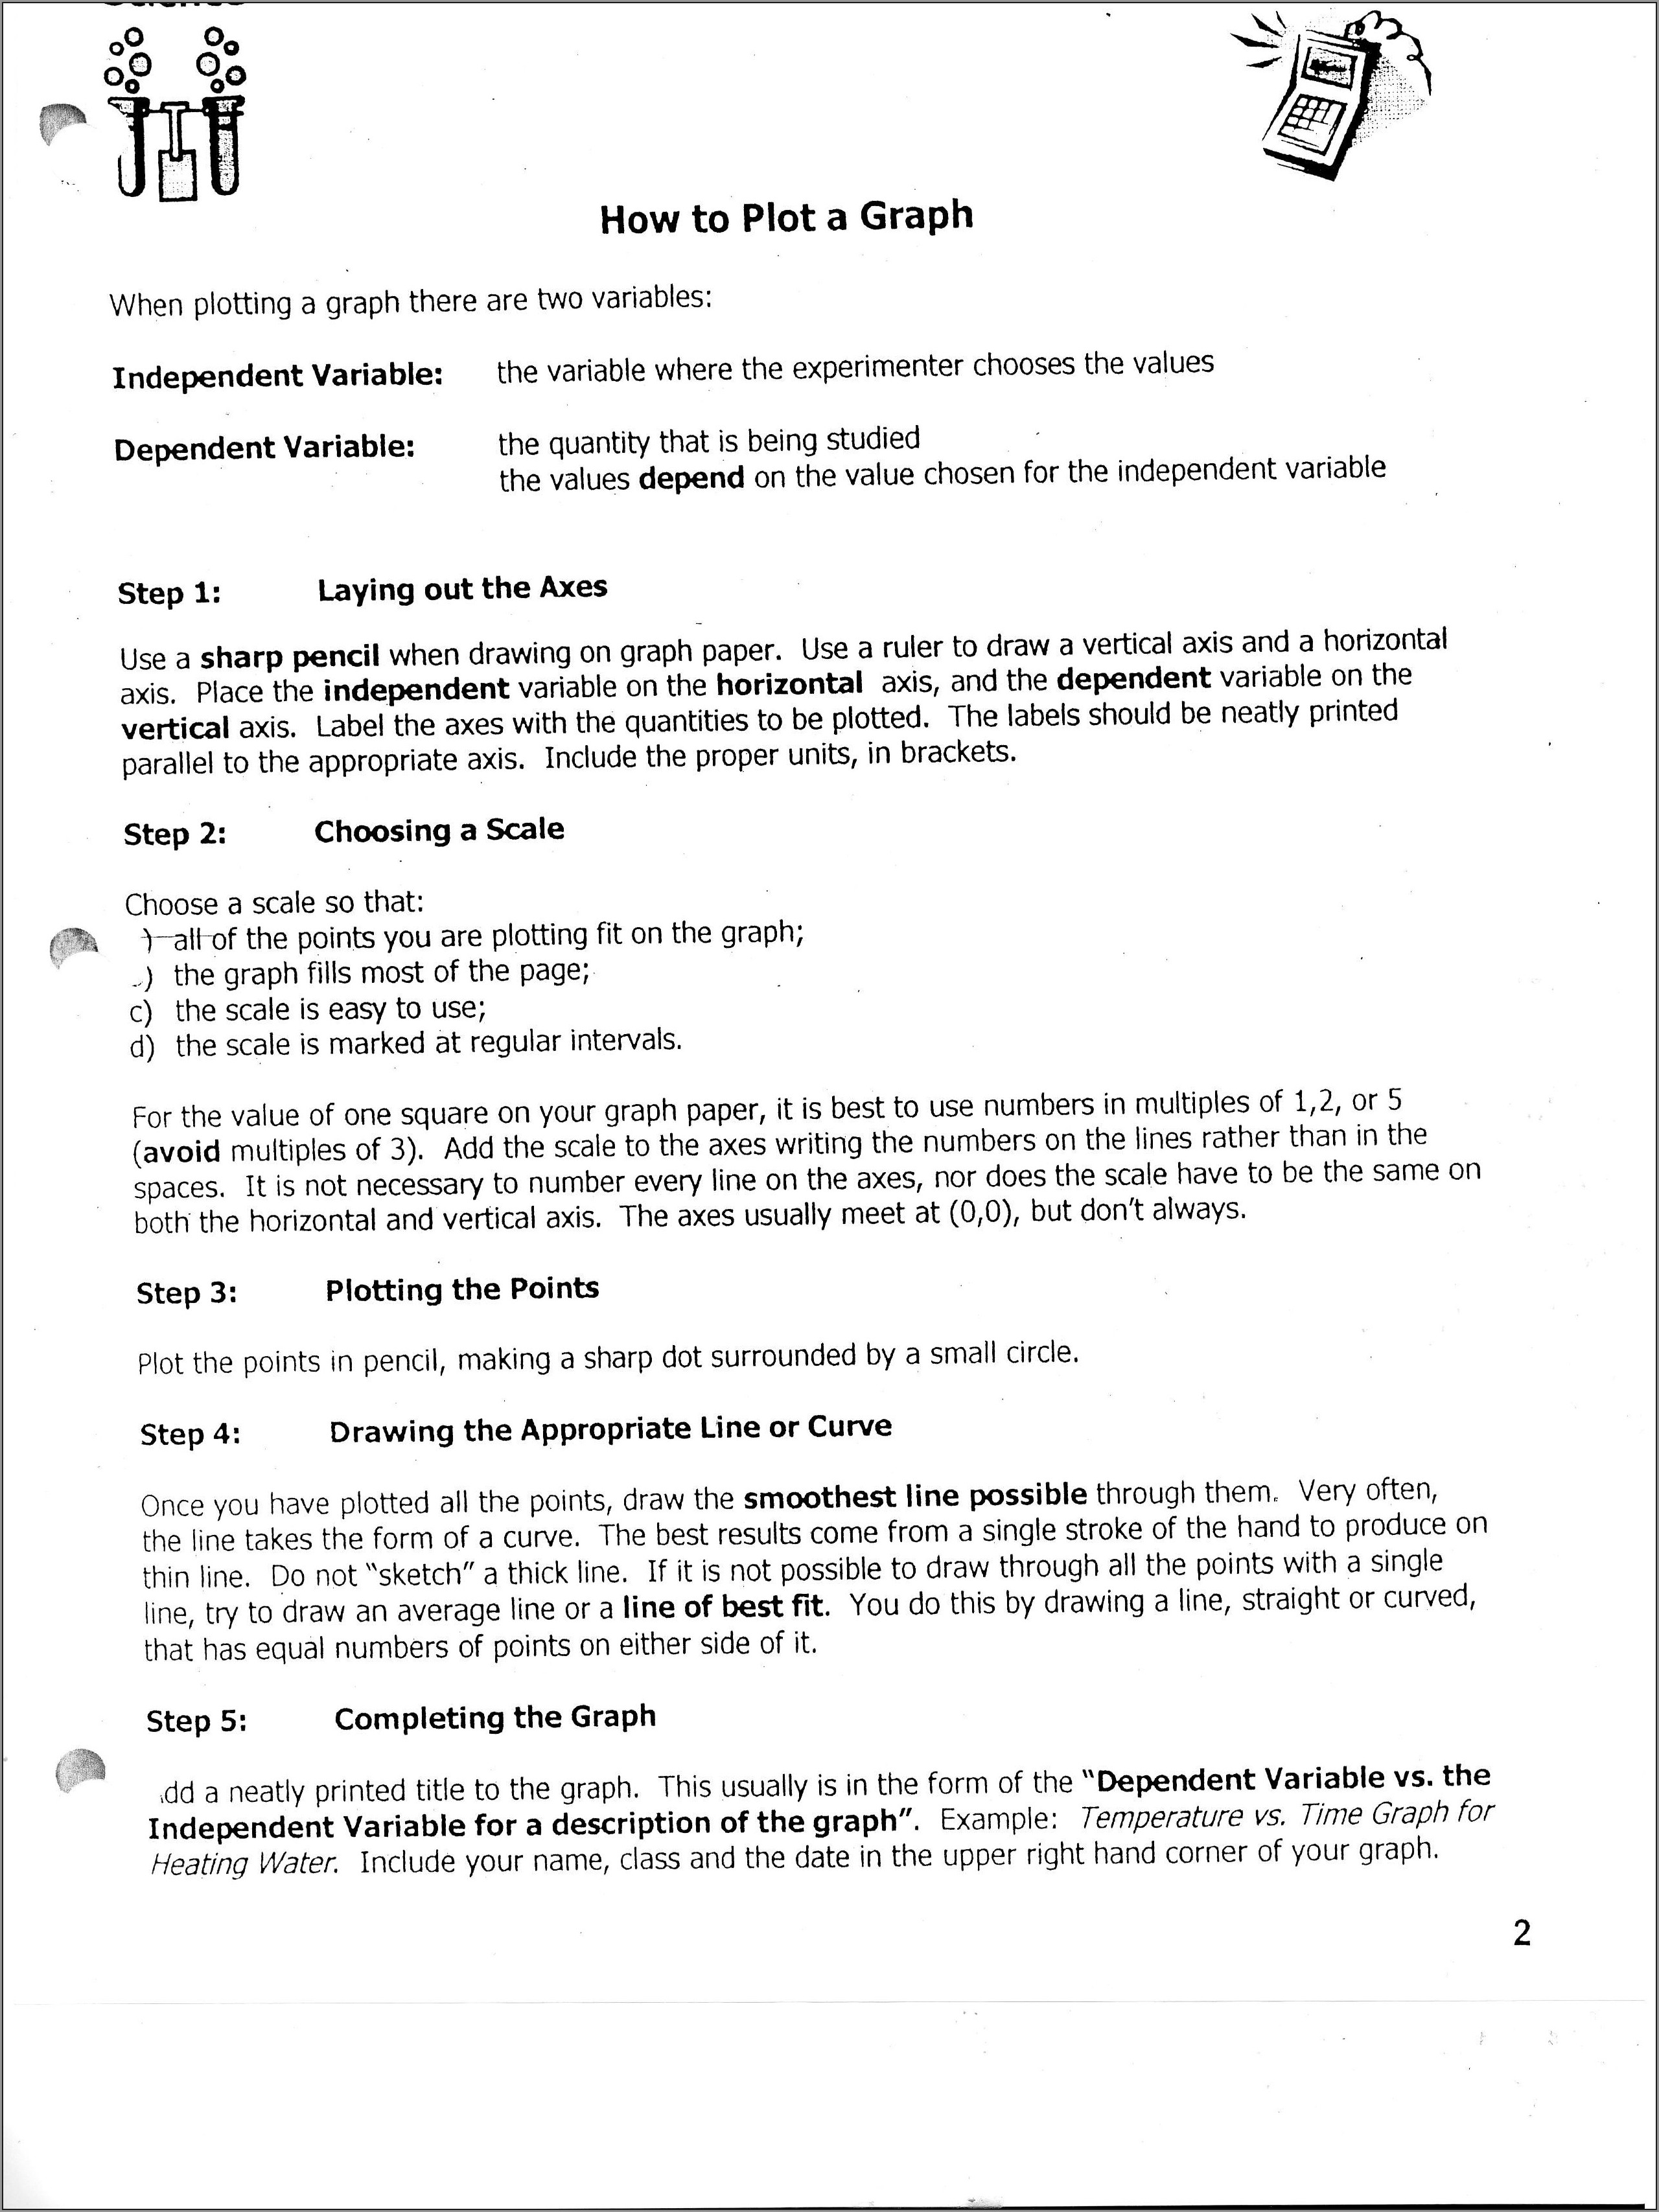 Practice With The Scientific Method Worksheet Answers